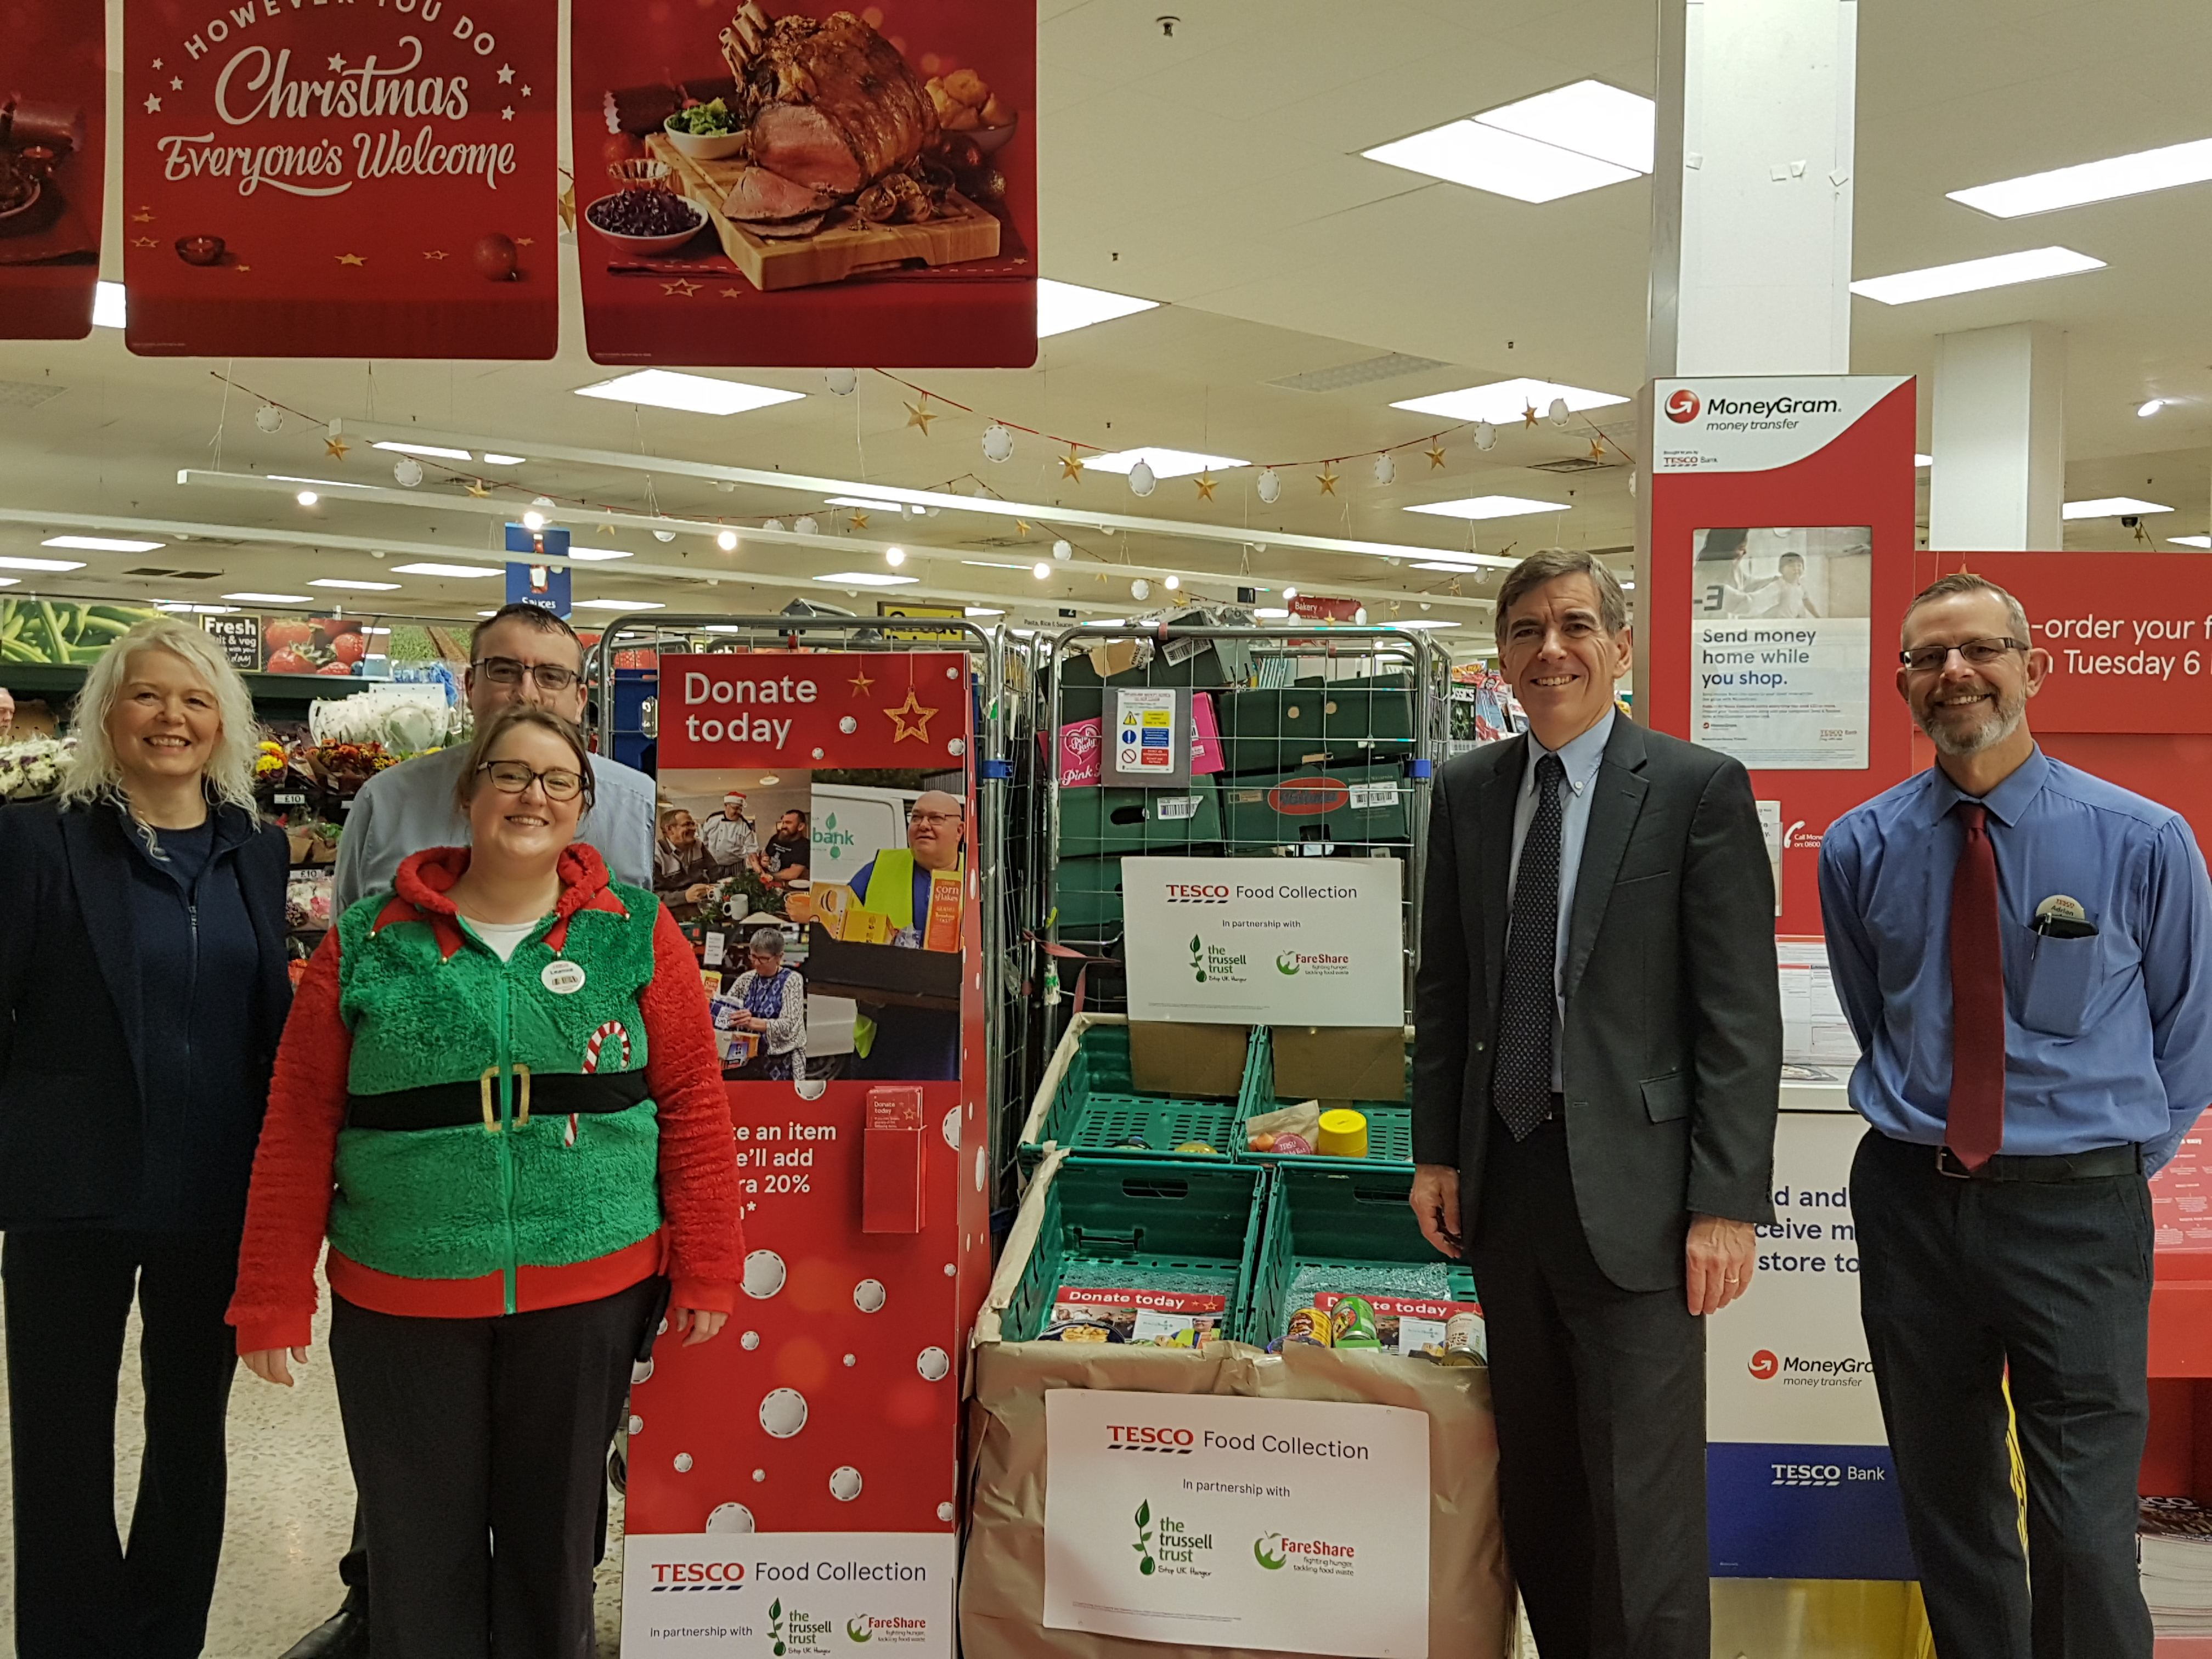 Tesco Food Collection Helps Those In Need David Rutley Mp